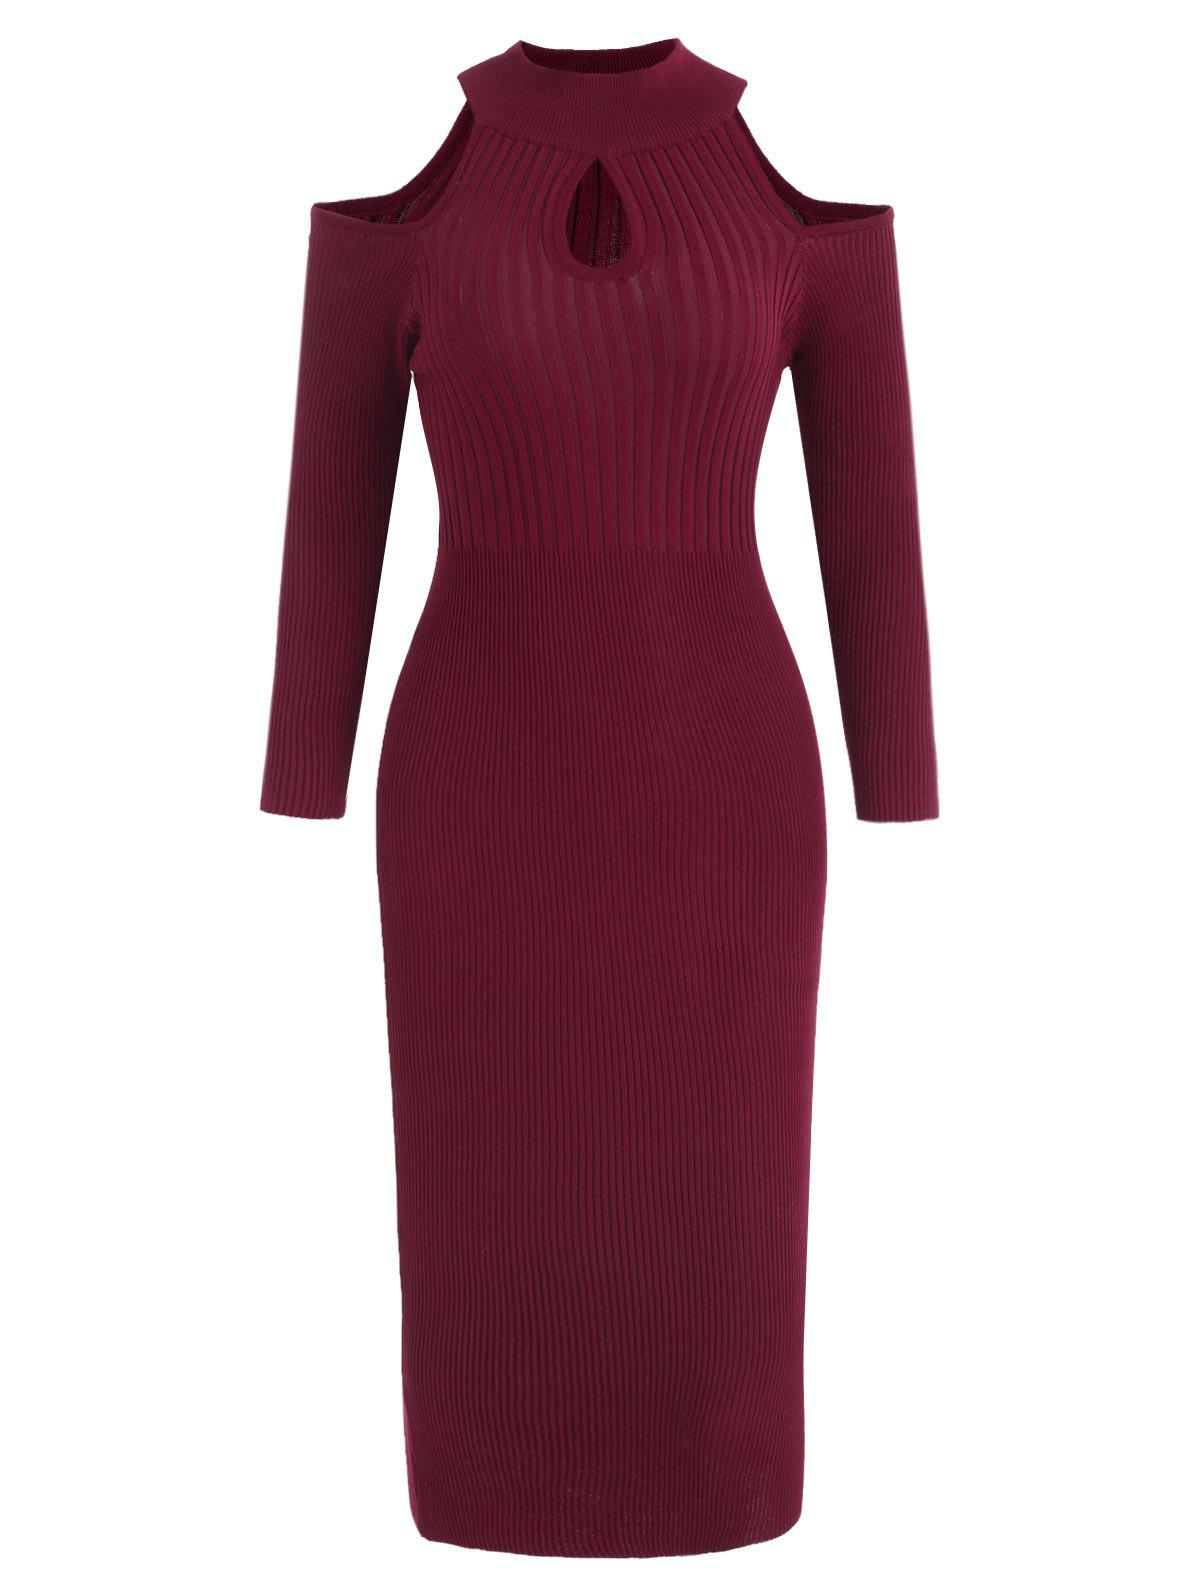 Unique Cold Shoulder Full Sleeve Knit Dress